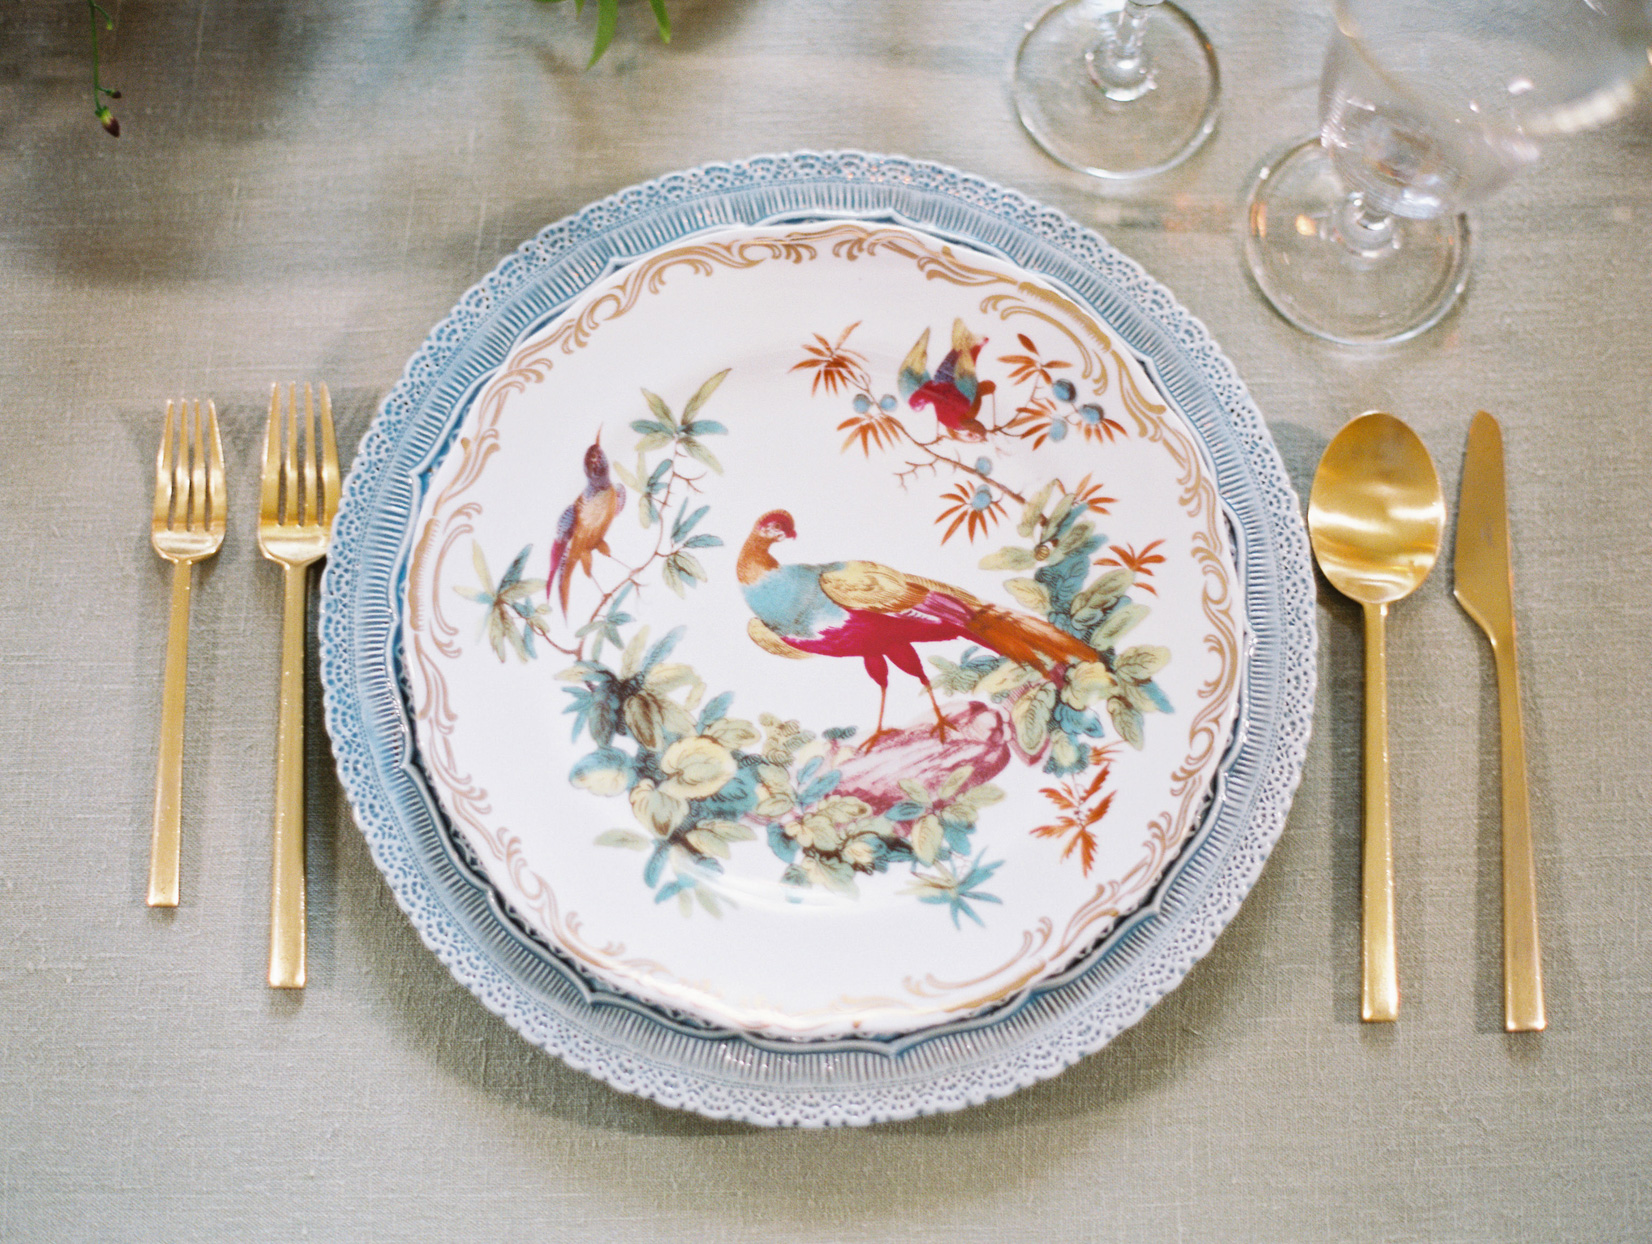 dinner table setting with gold utensils and decorative china plates